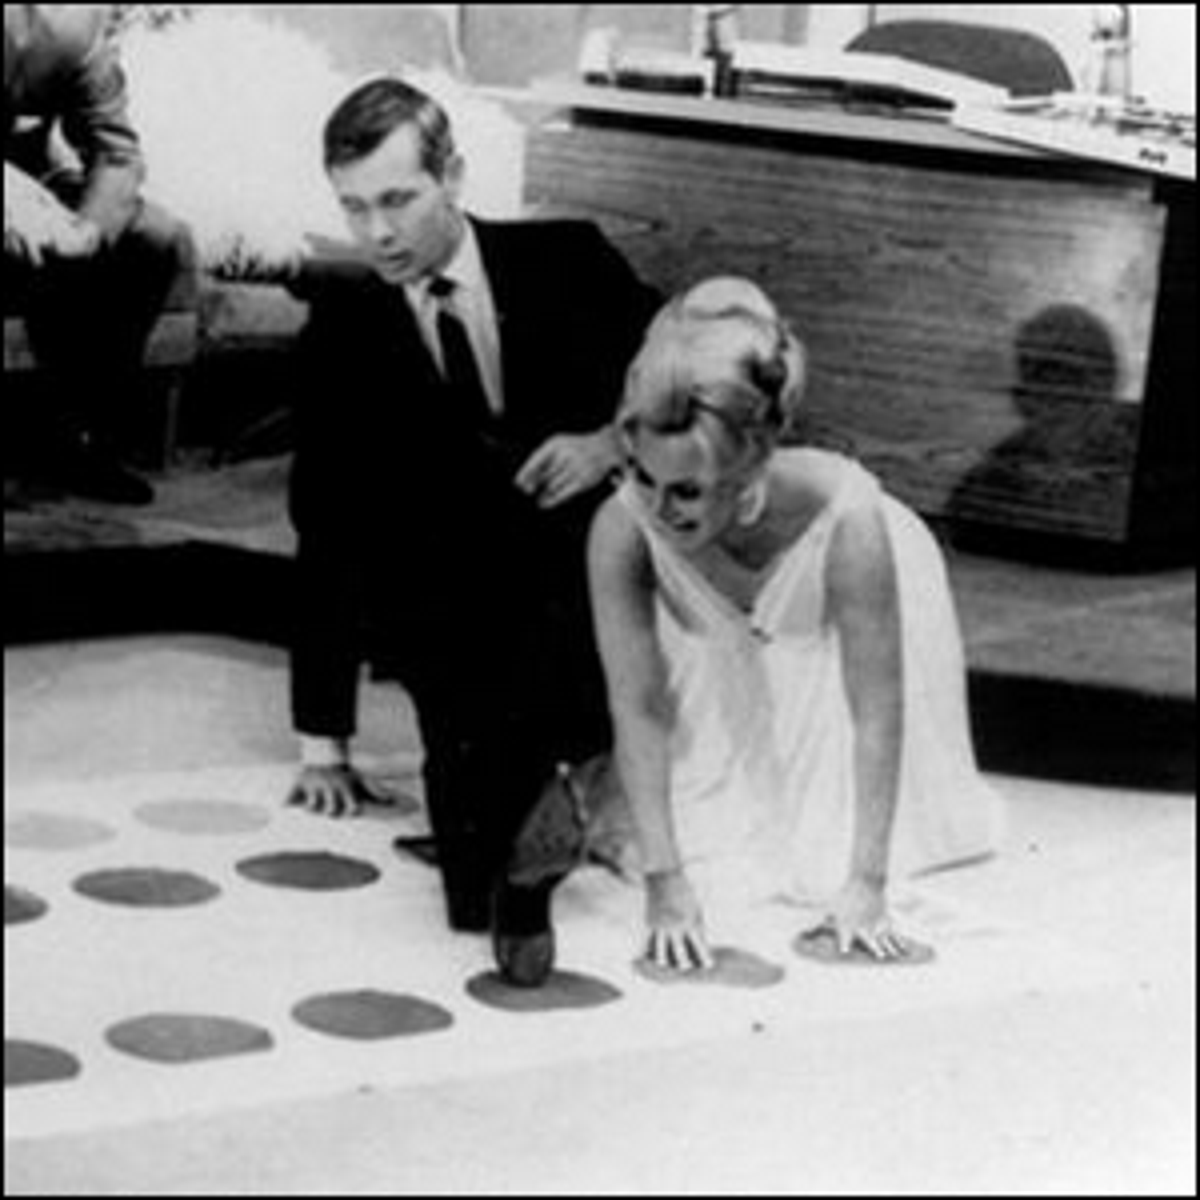 Johnny Carson and Eva Gabor playing Twister on The Tonight Show.